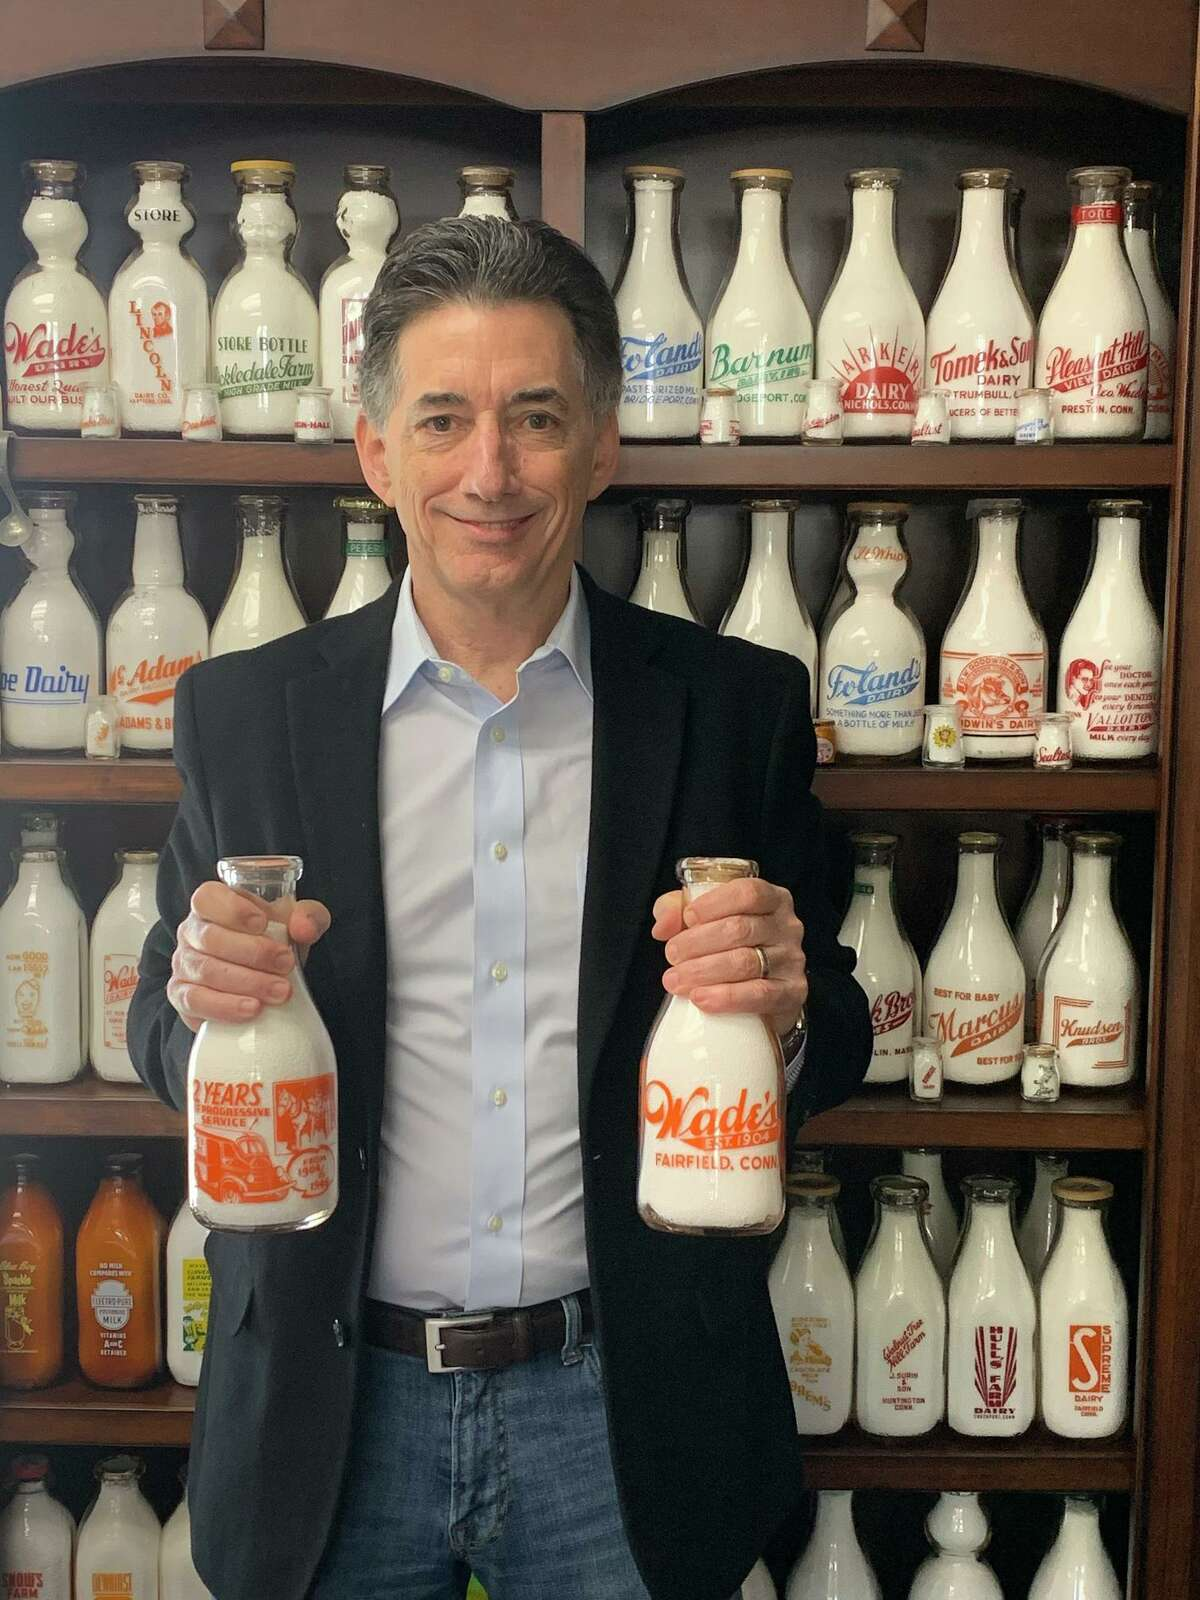 Doug Wade is the president of Wade's Dairy, Inc., and a recent addition to the Housatonic Community College Foundation board.